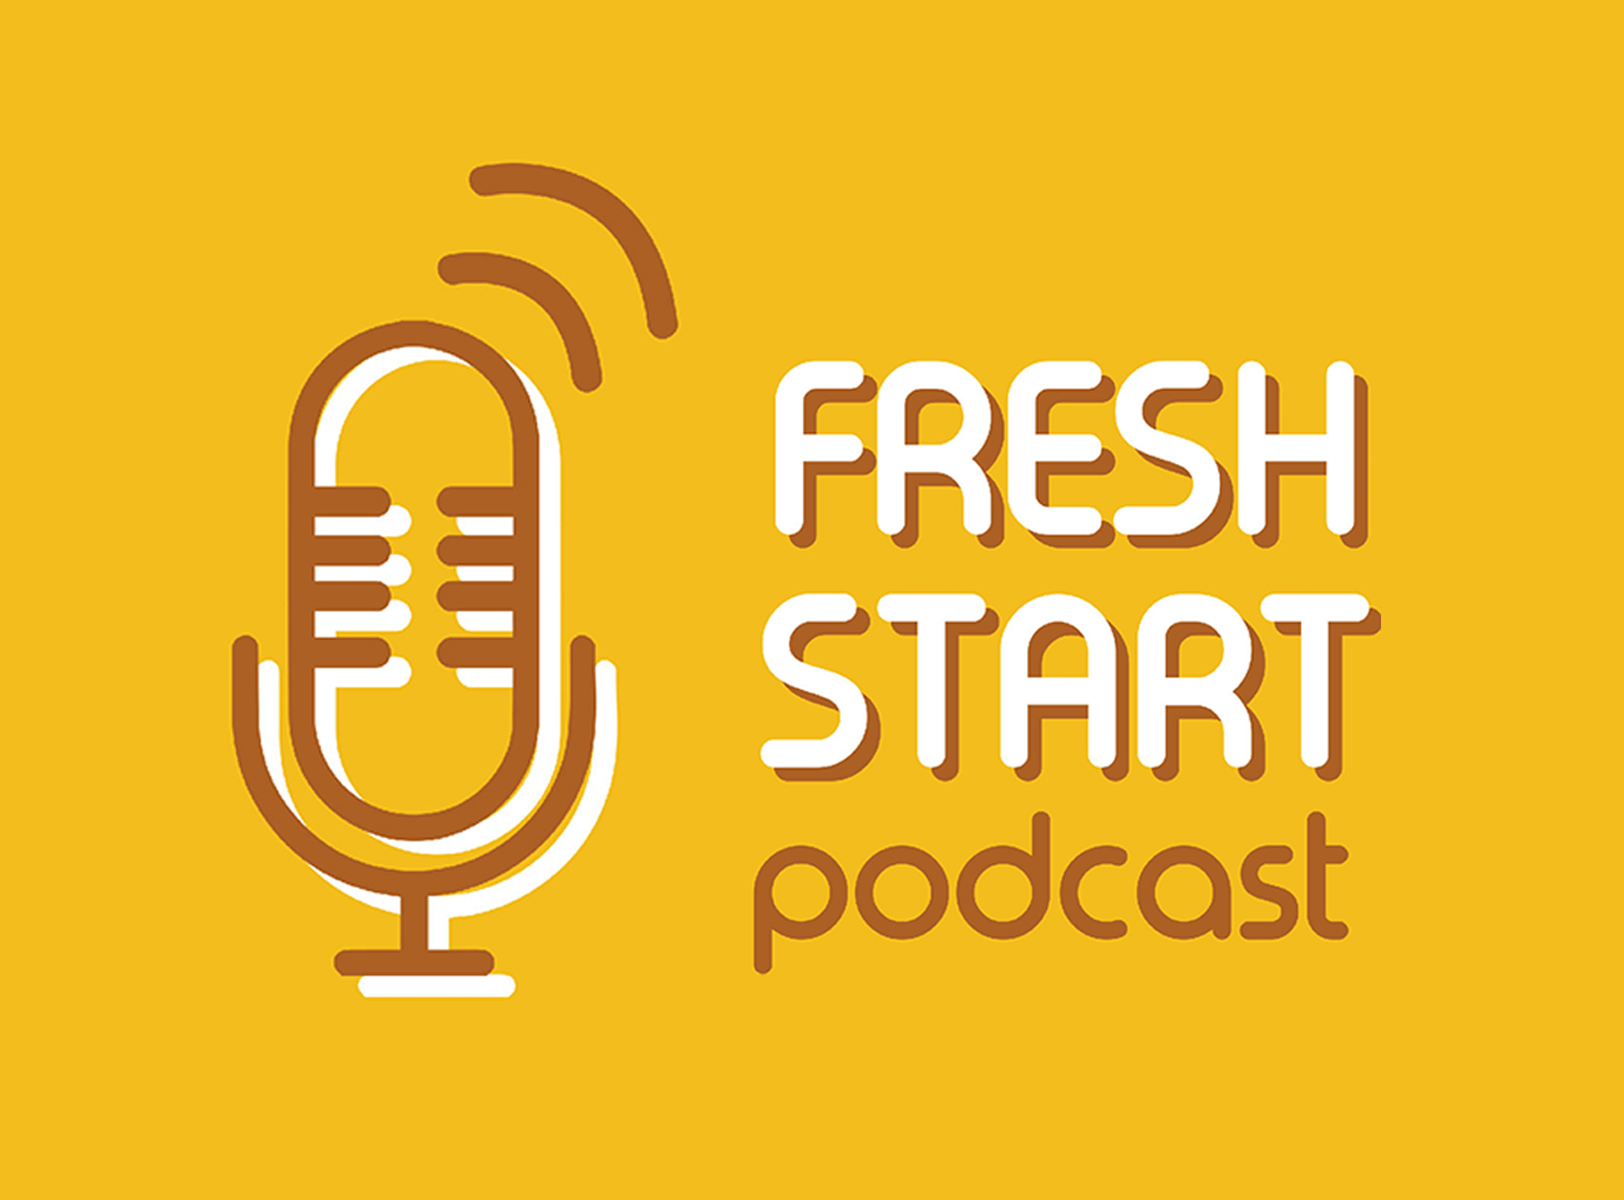 Fresh Start: Podcast News (5/19/2020 Tue.)